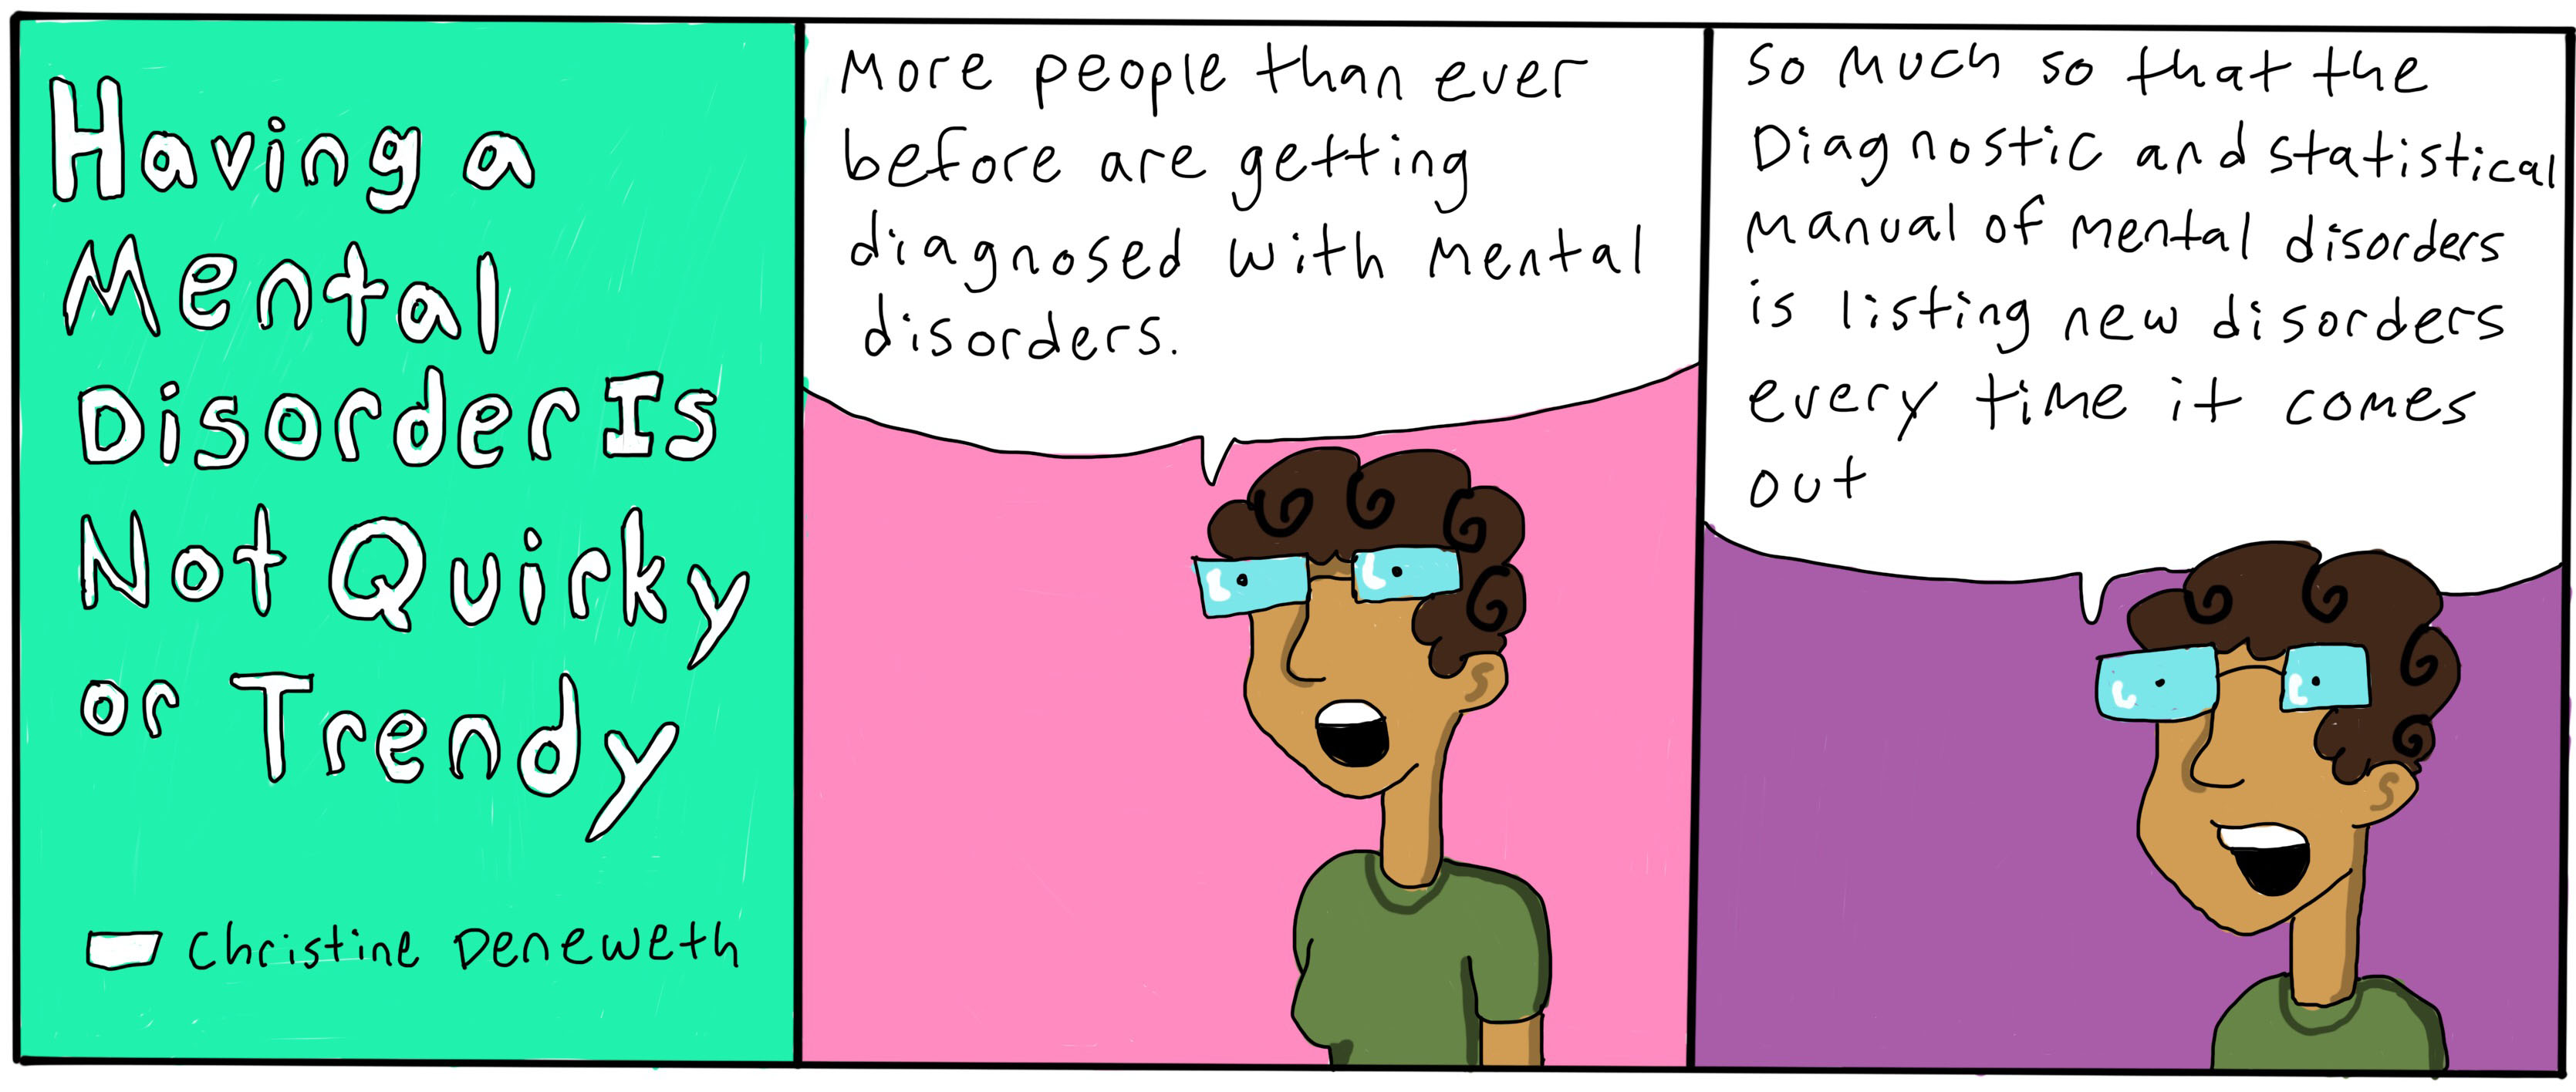 Having A Mental Disorder Is Not Trendy